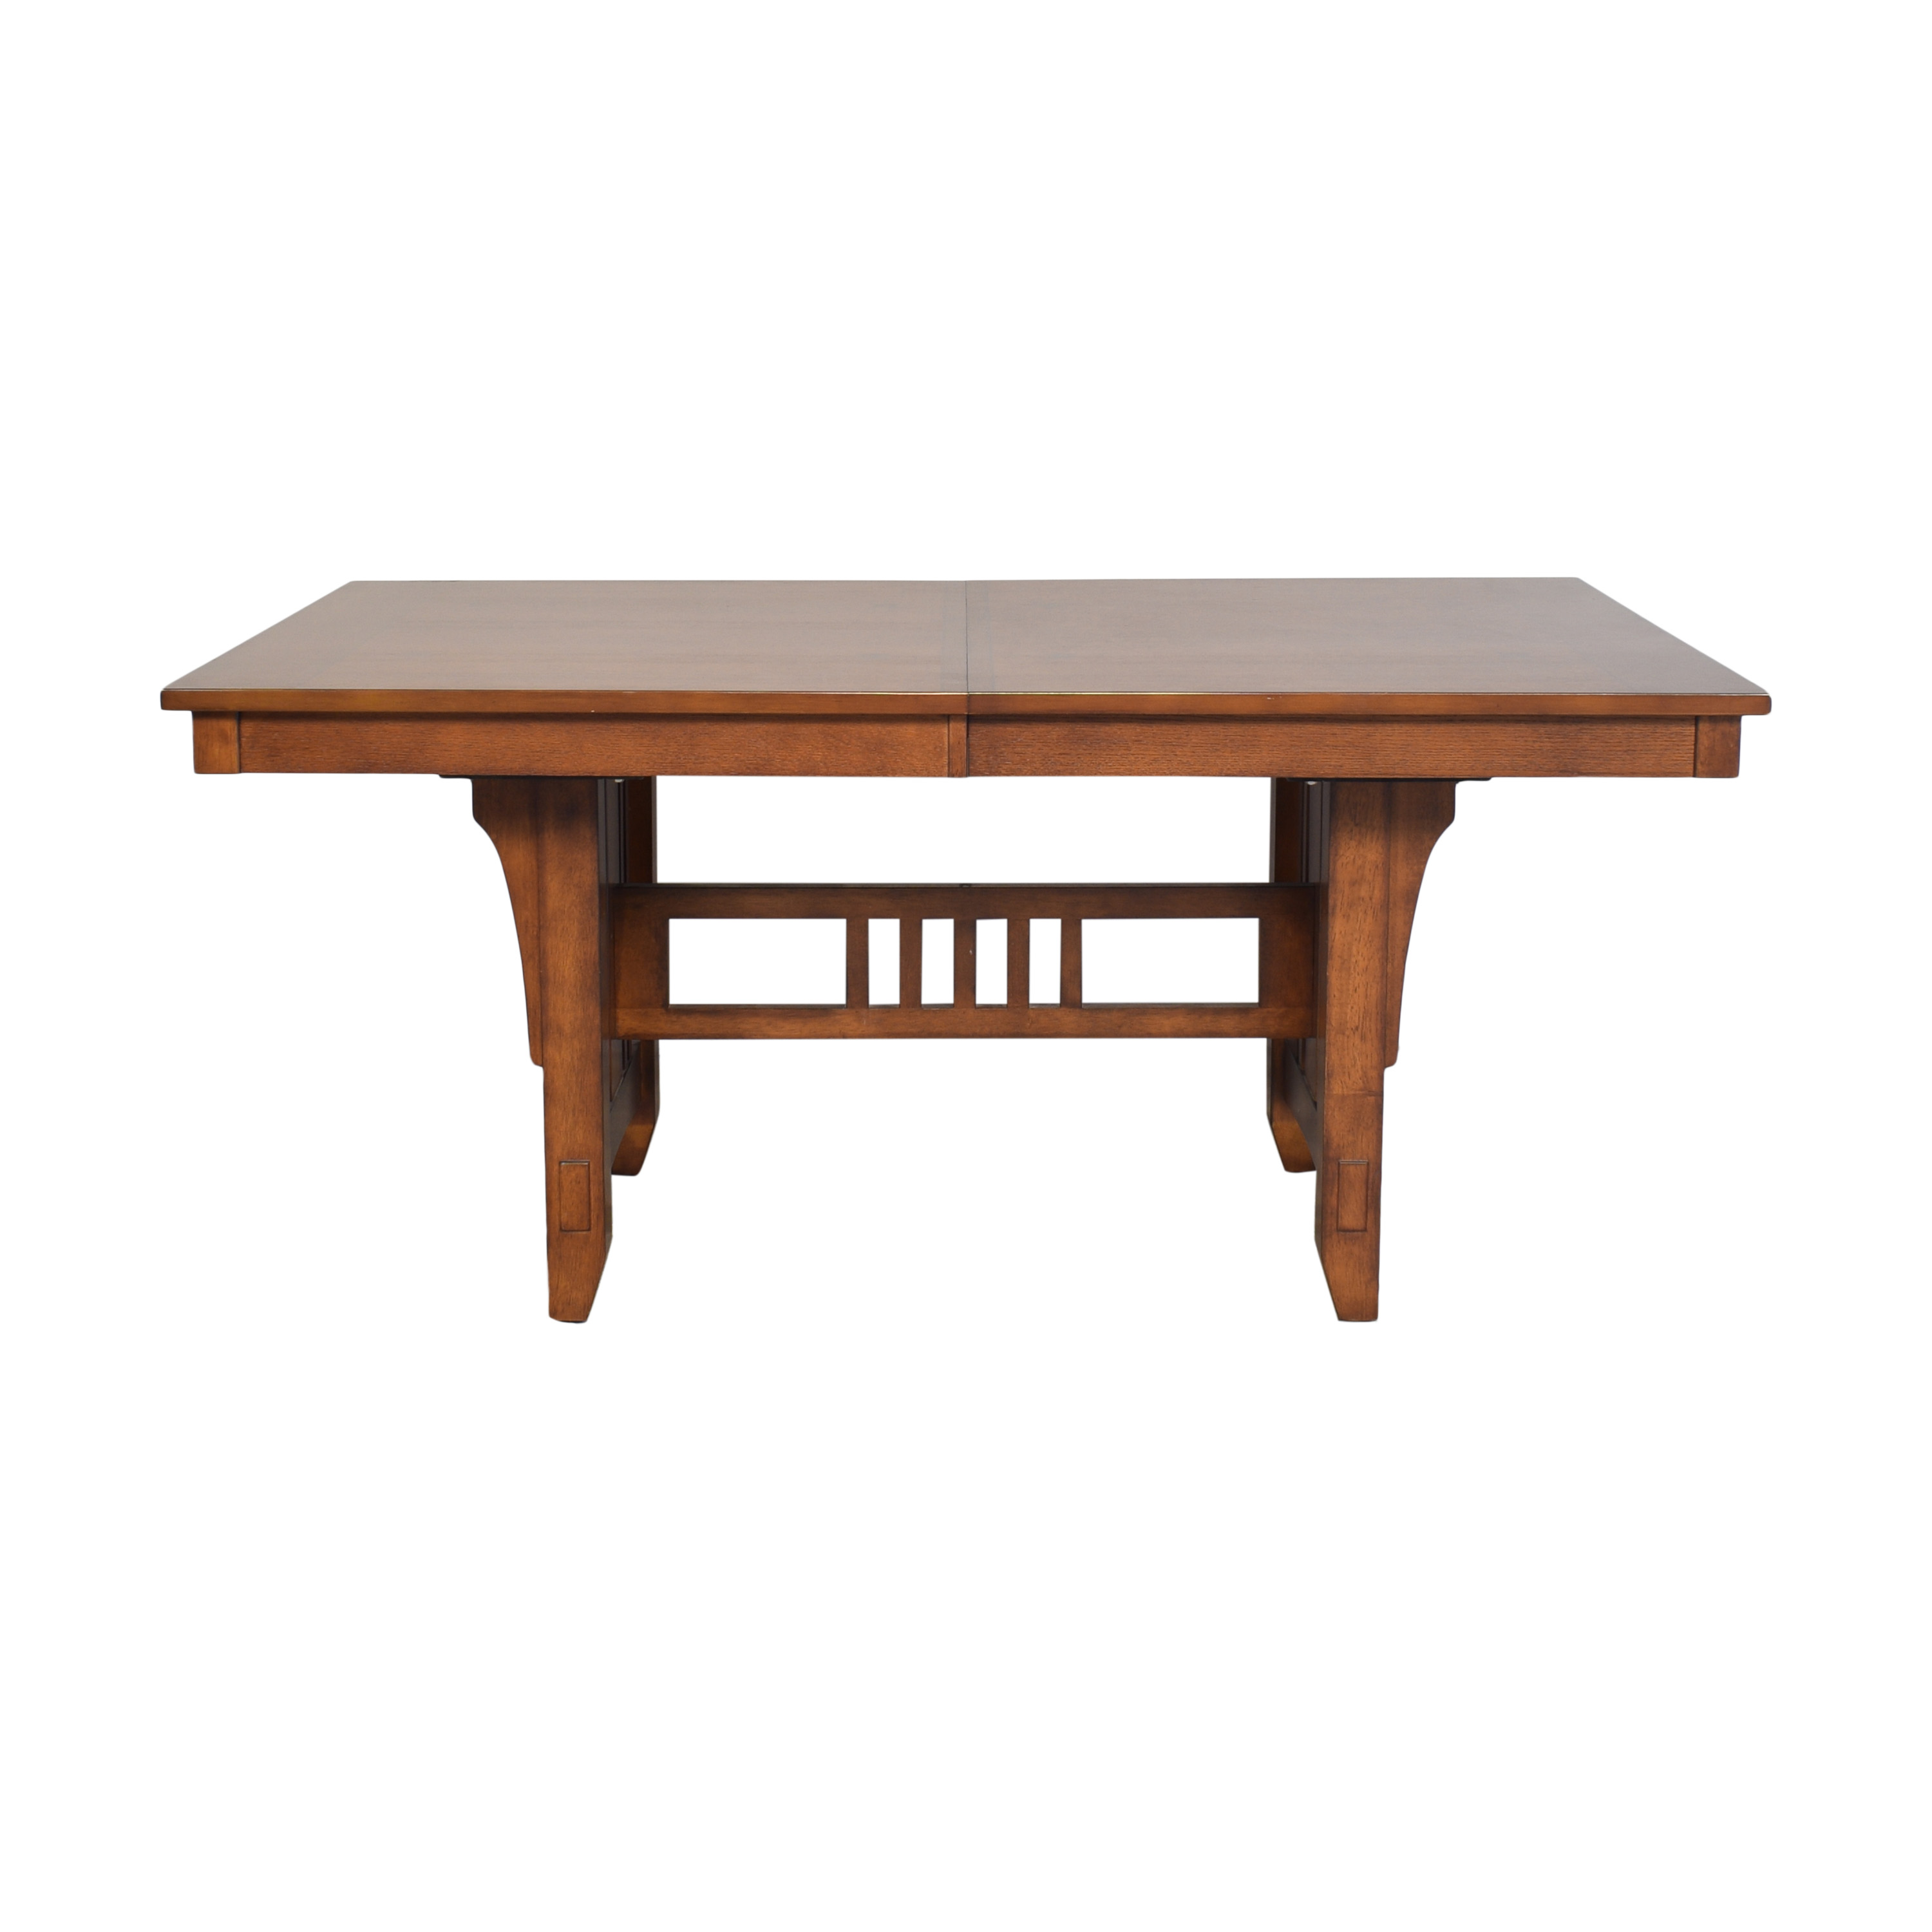 Green River Furniture Green River Mission Style Extendable Dining Table discount